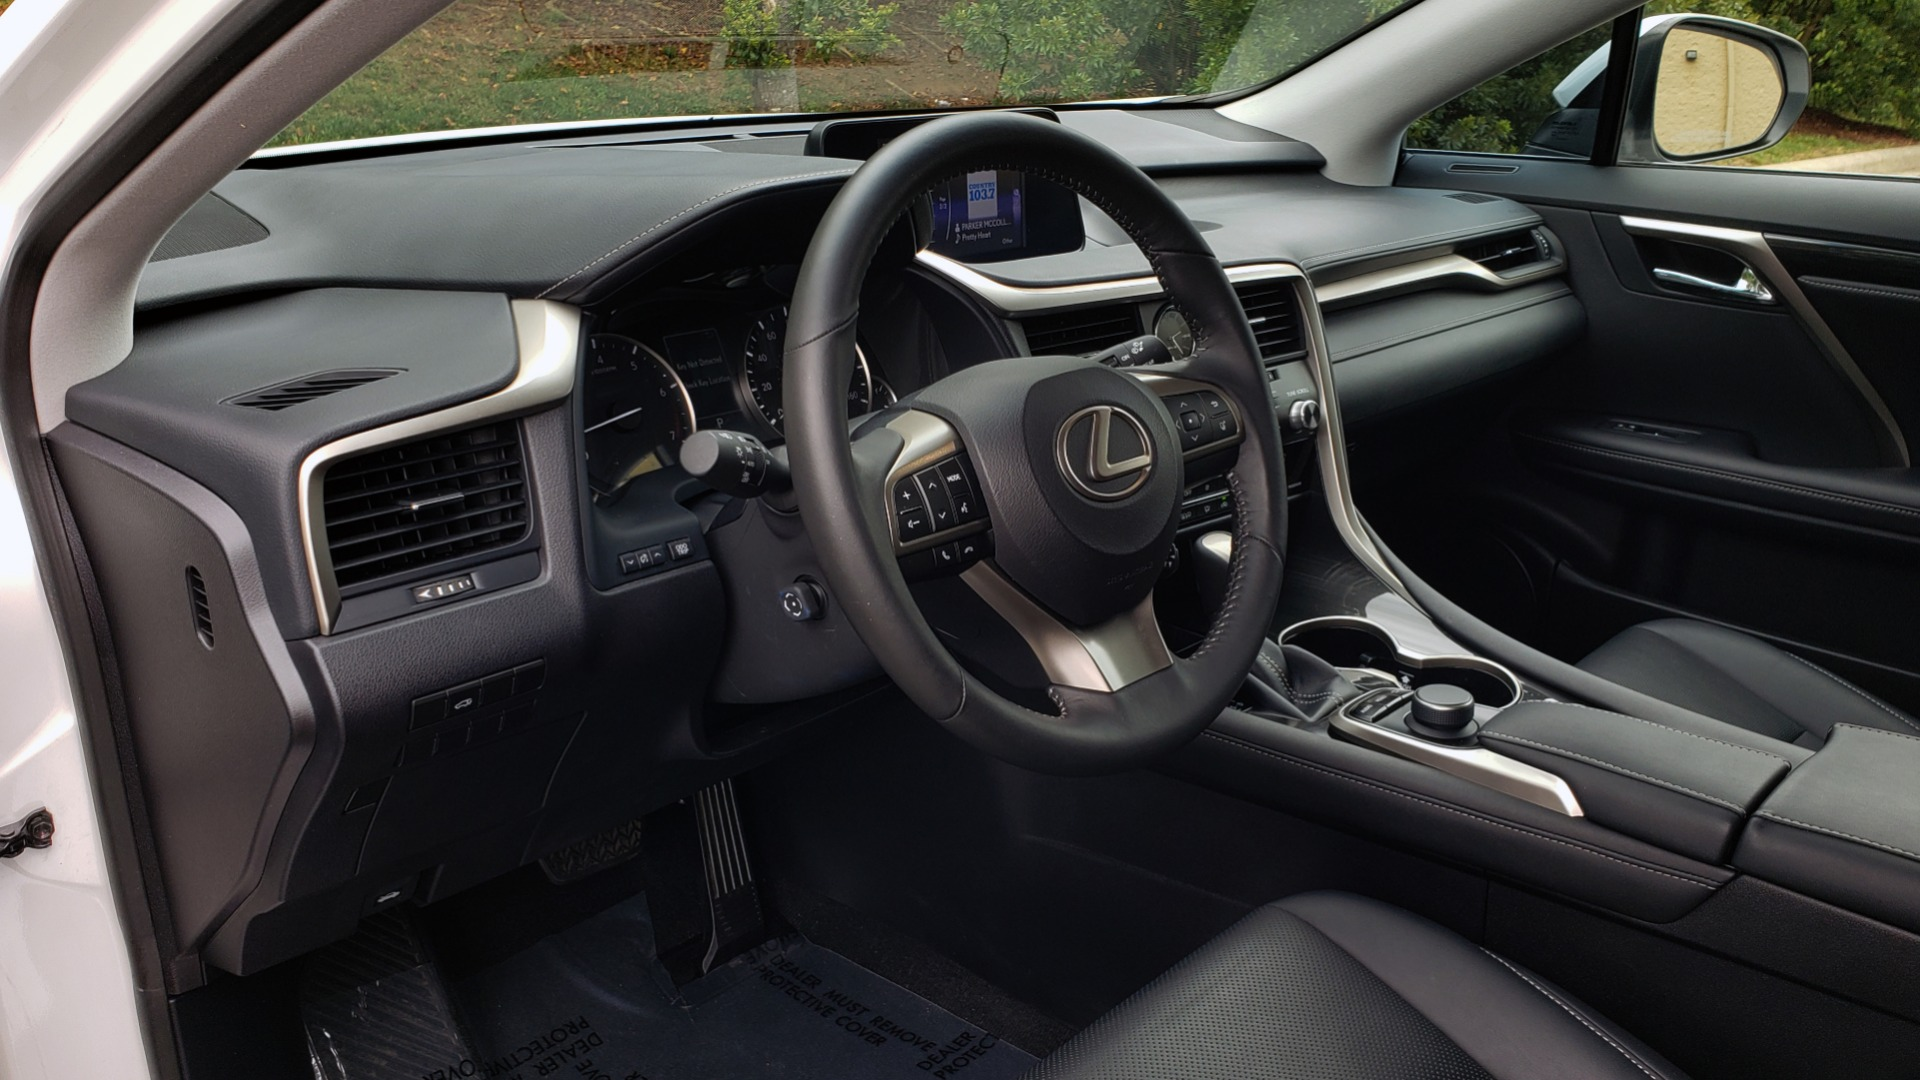 Used 2016 Lexus RX 350 FWD / 4-DR / 3.5L V6 / 8-SPD AUTO / LEATHER / REARVIEW for sale $29,795 at Formula Imports in Charlotte NC 28227 39